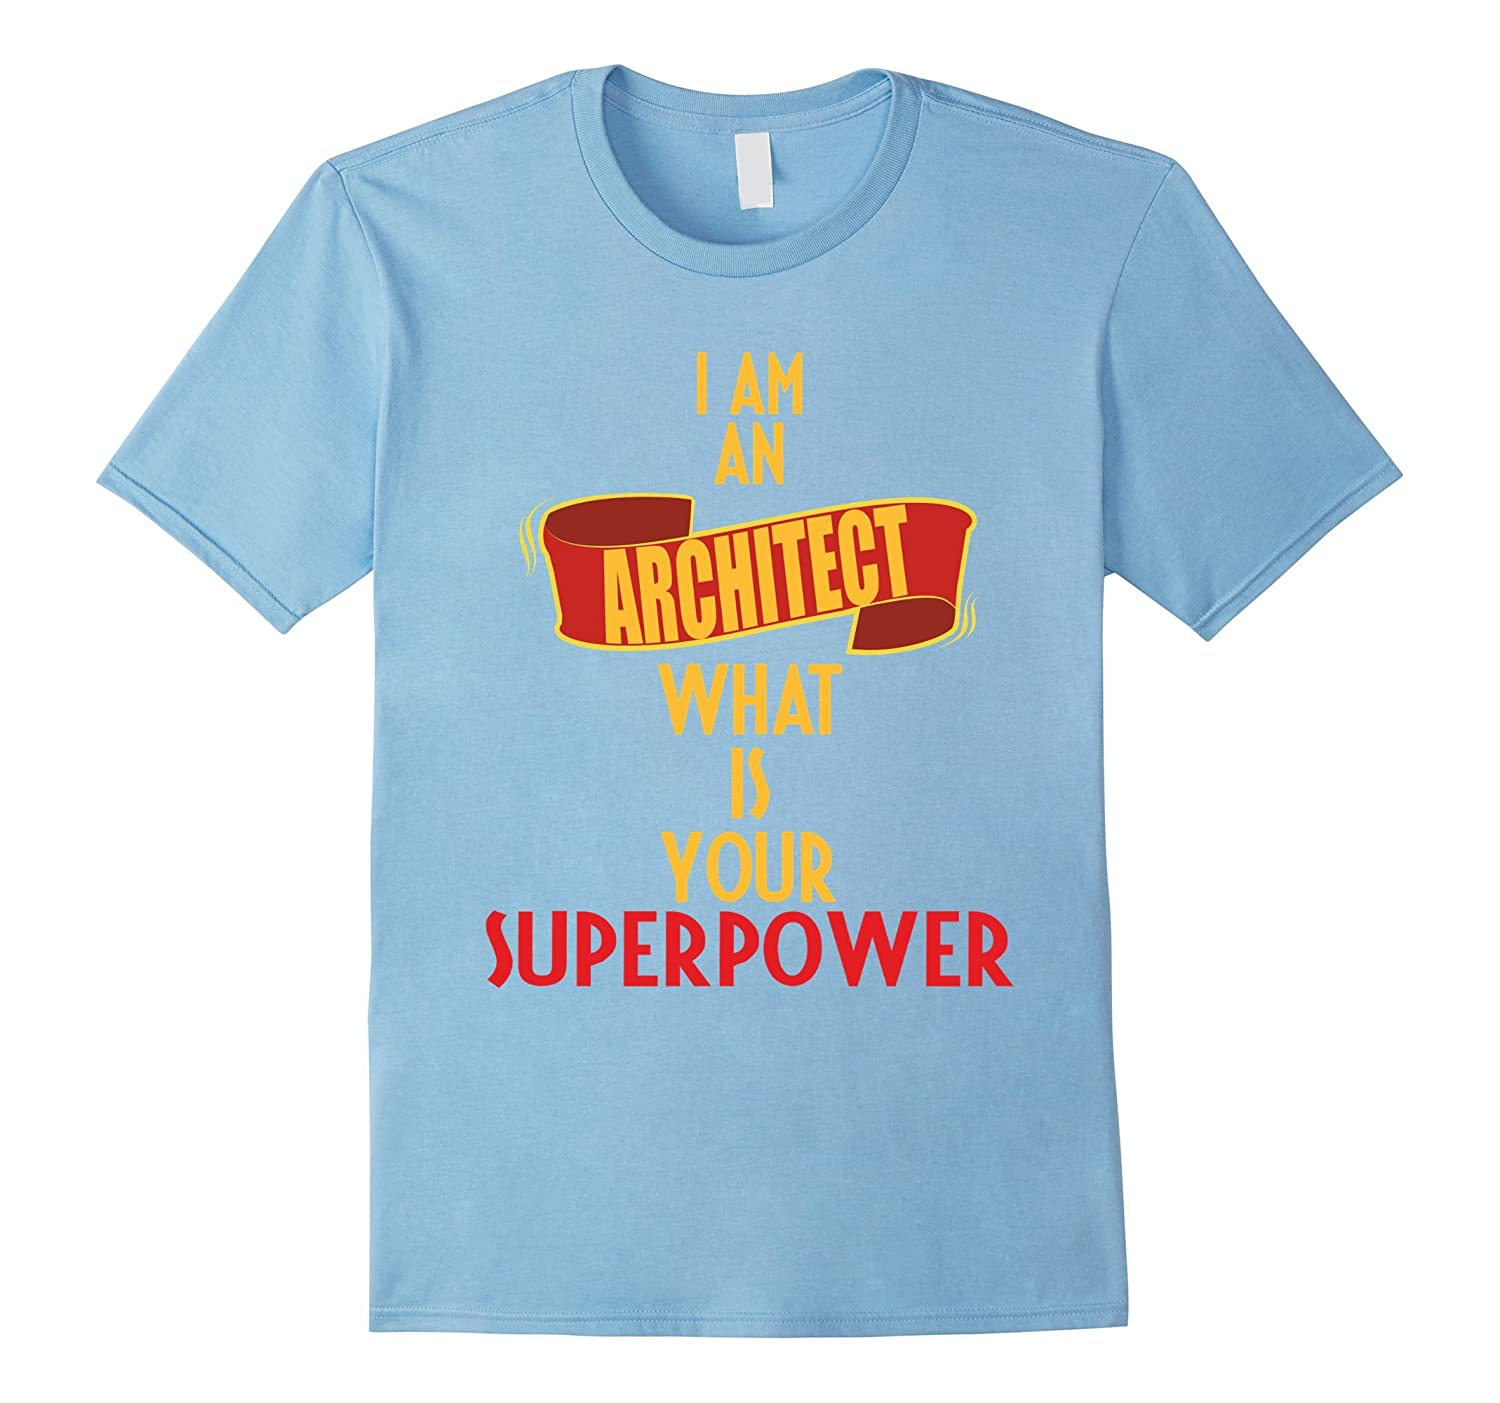 Architect T-shirt -I am an Architect what is your superpower-TJ